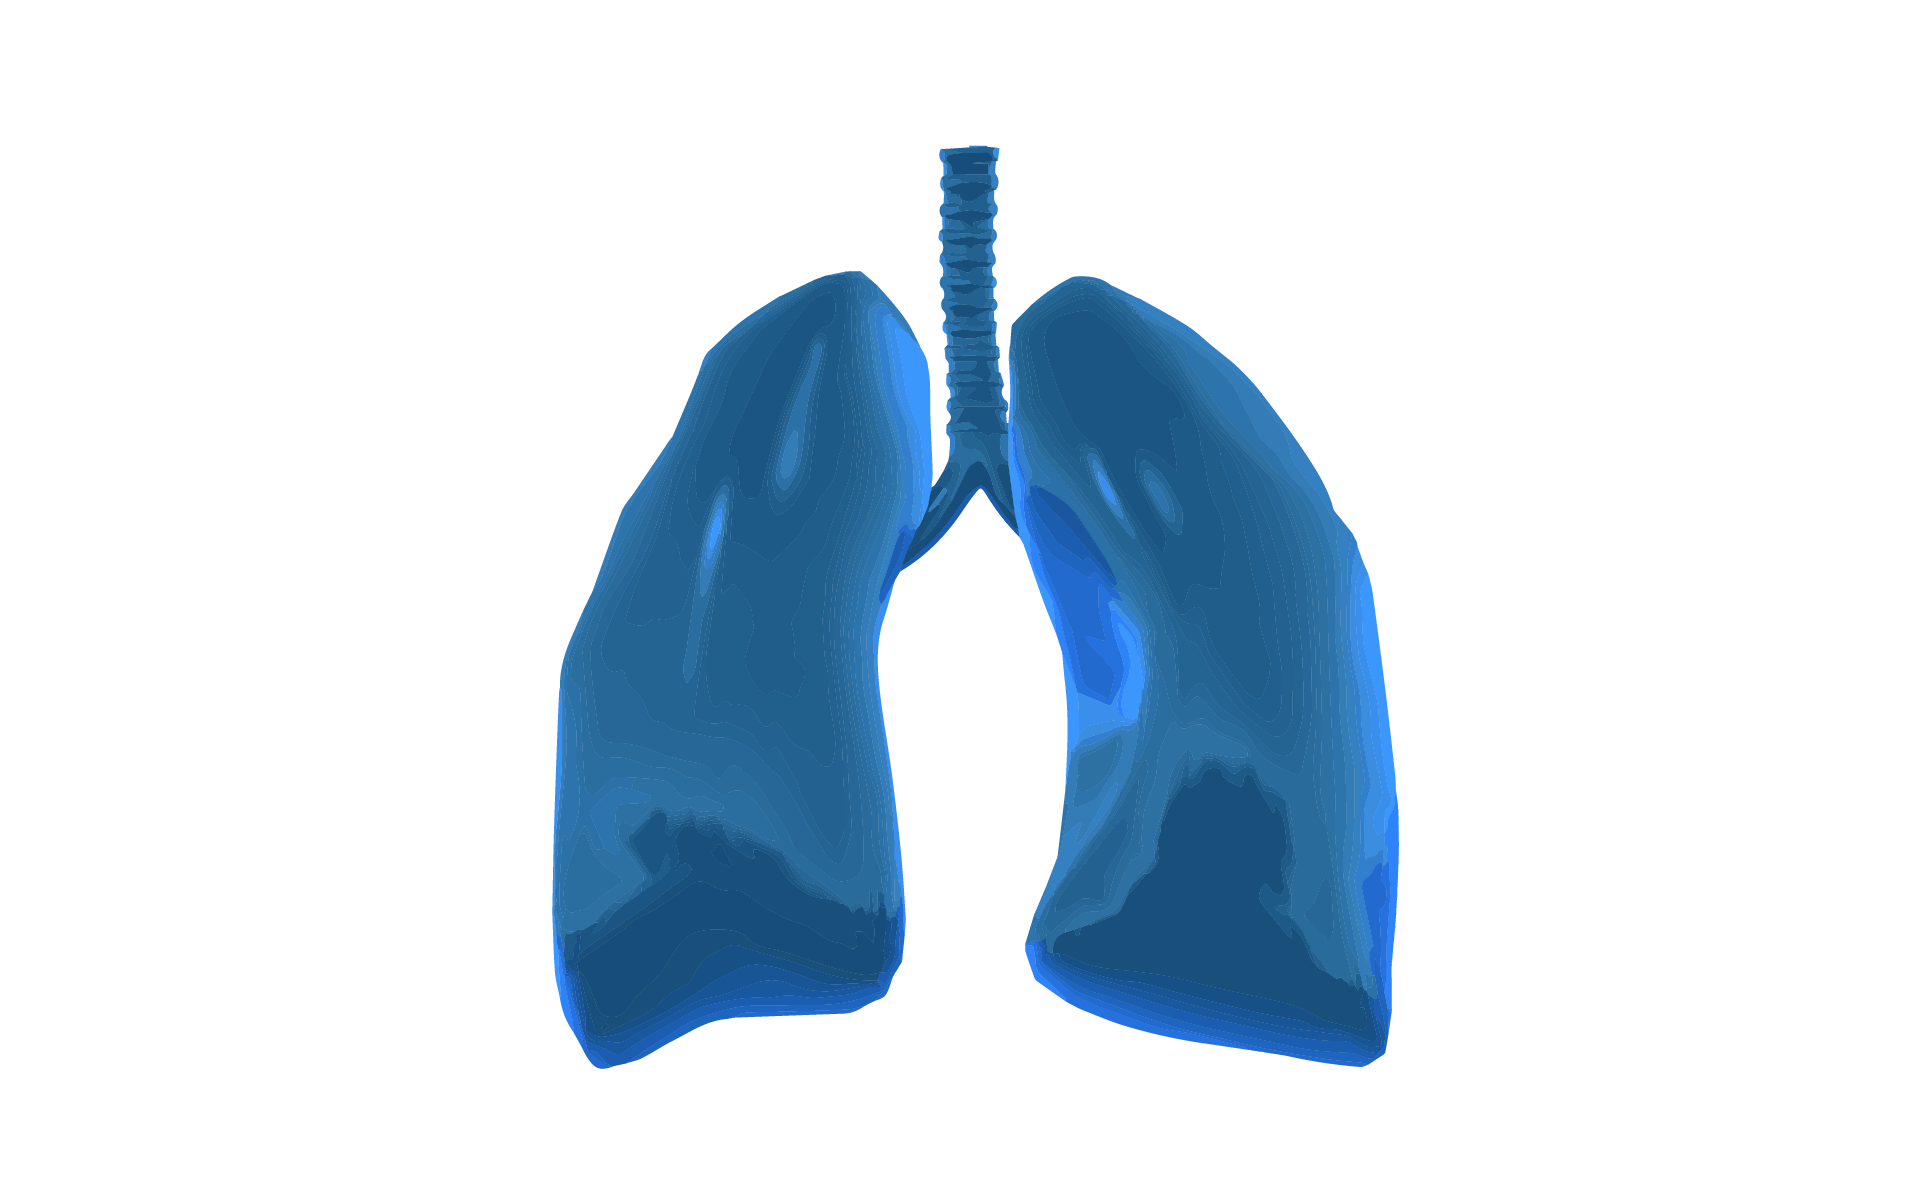 A 3D graphic image of a set of lungs